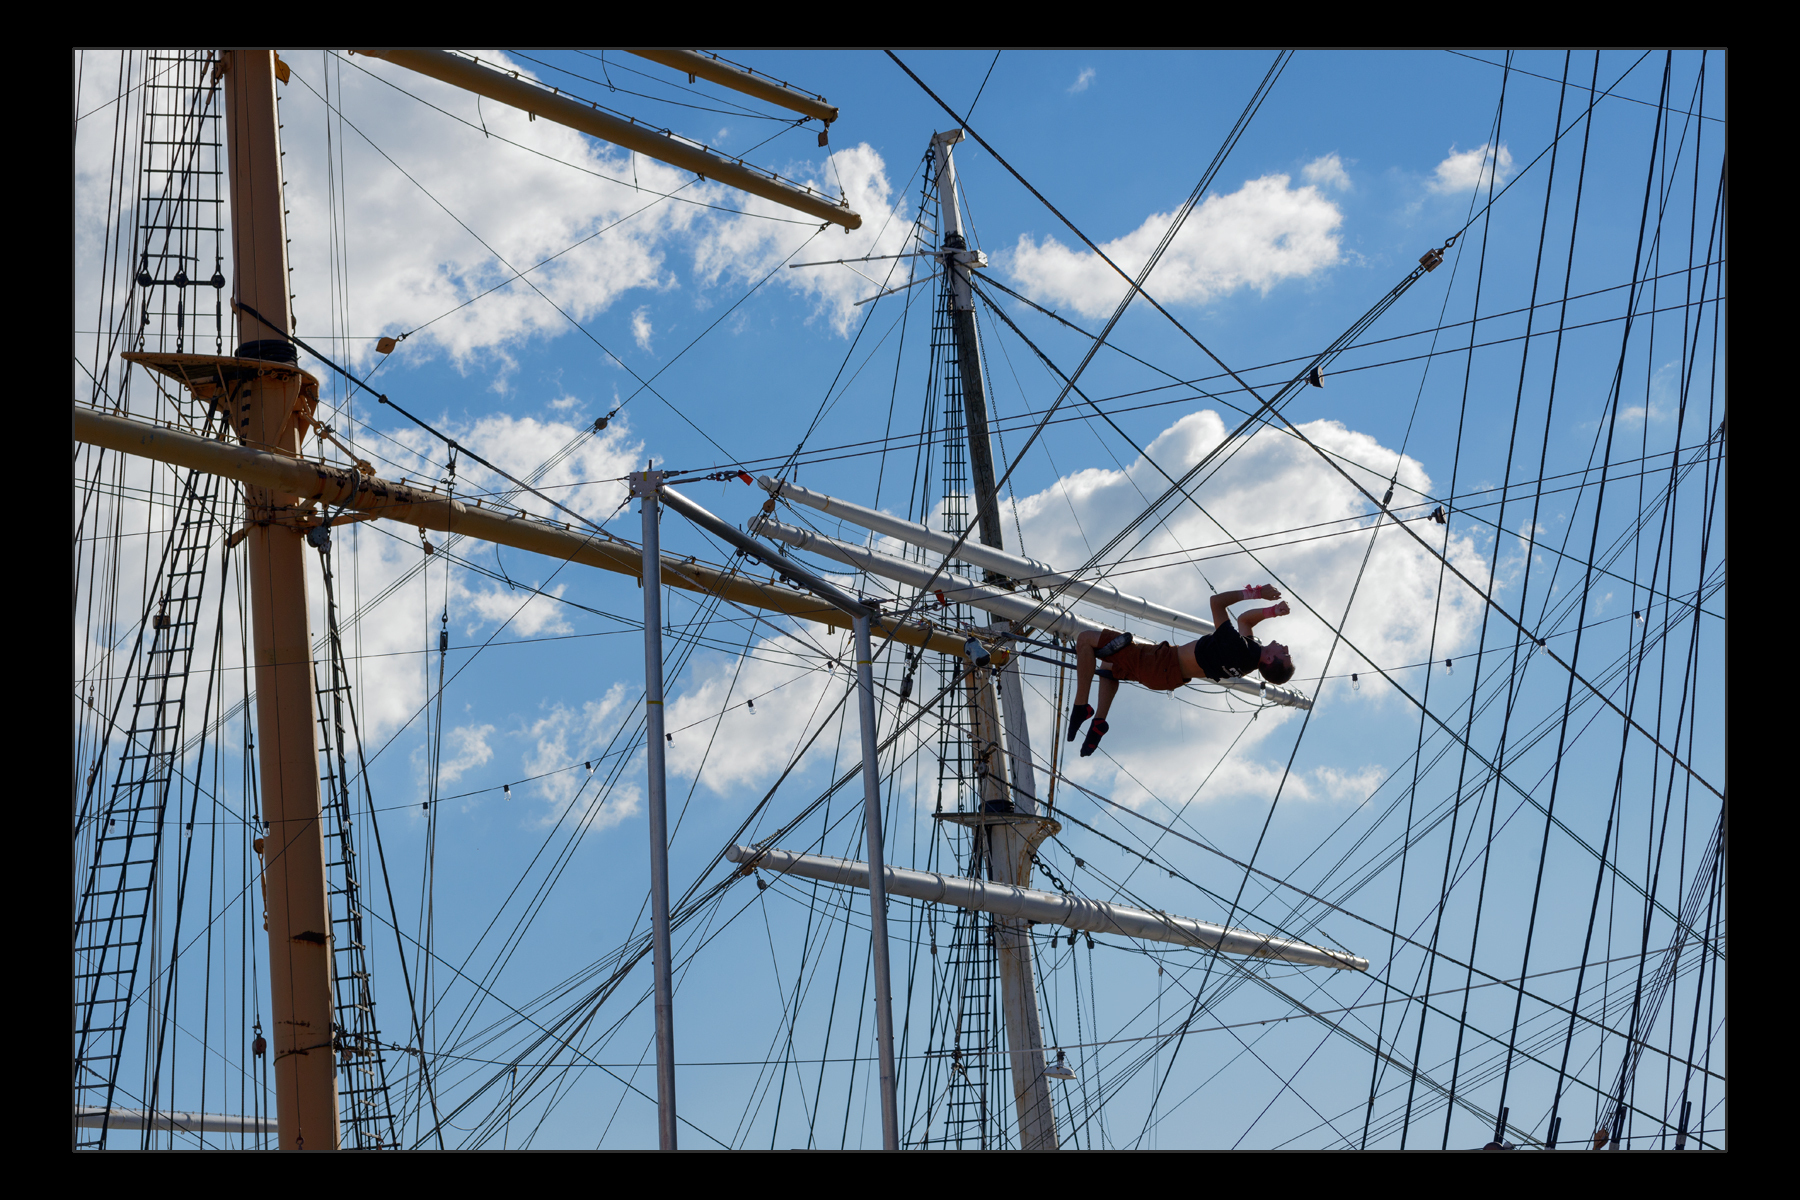 trapeze artist, South Street Seaport